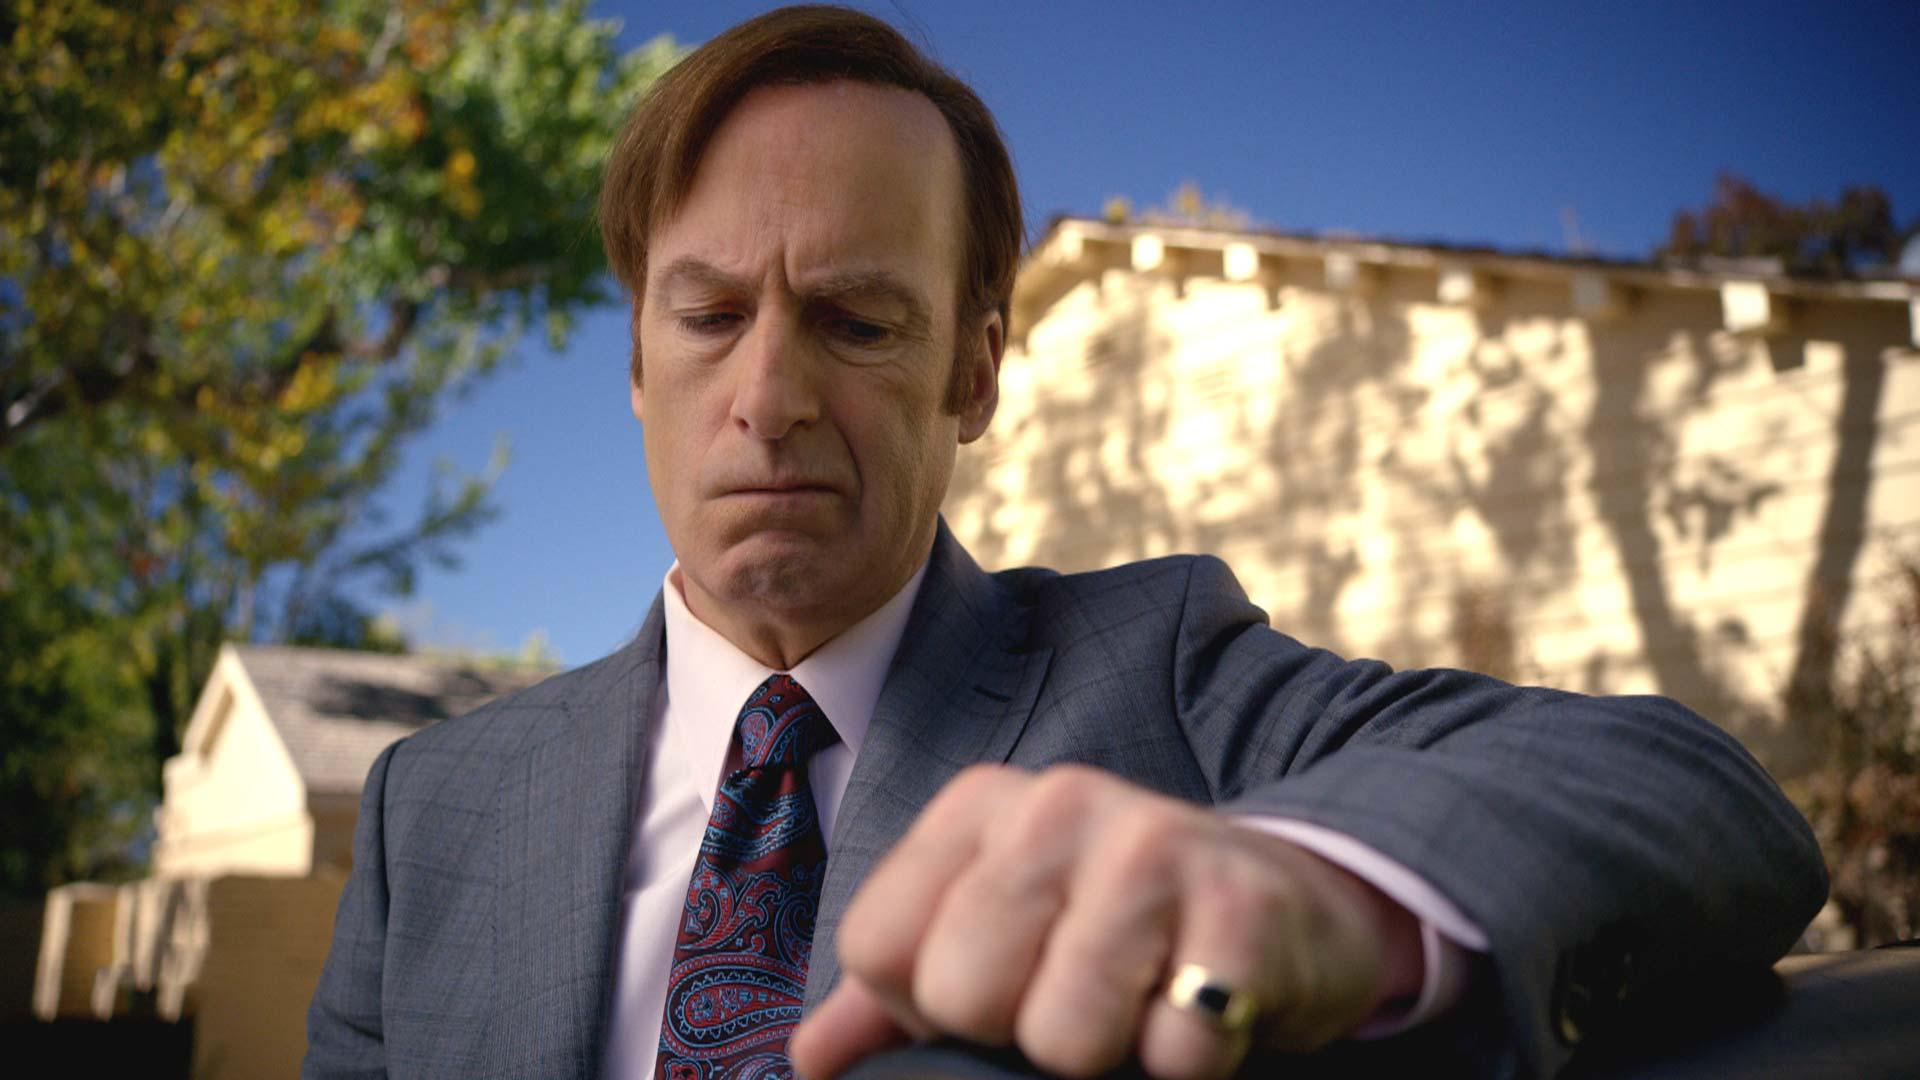 Actor Bob Odenkirk says he had a heart attack, but will 'be back soon' - CNET